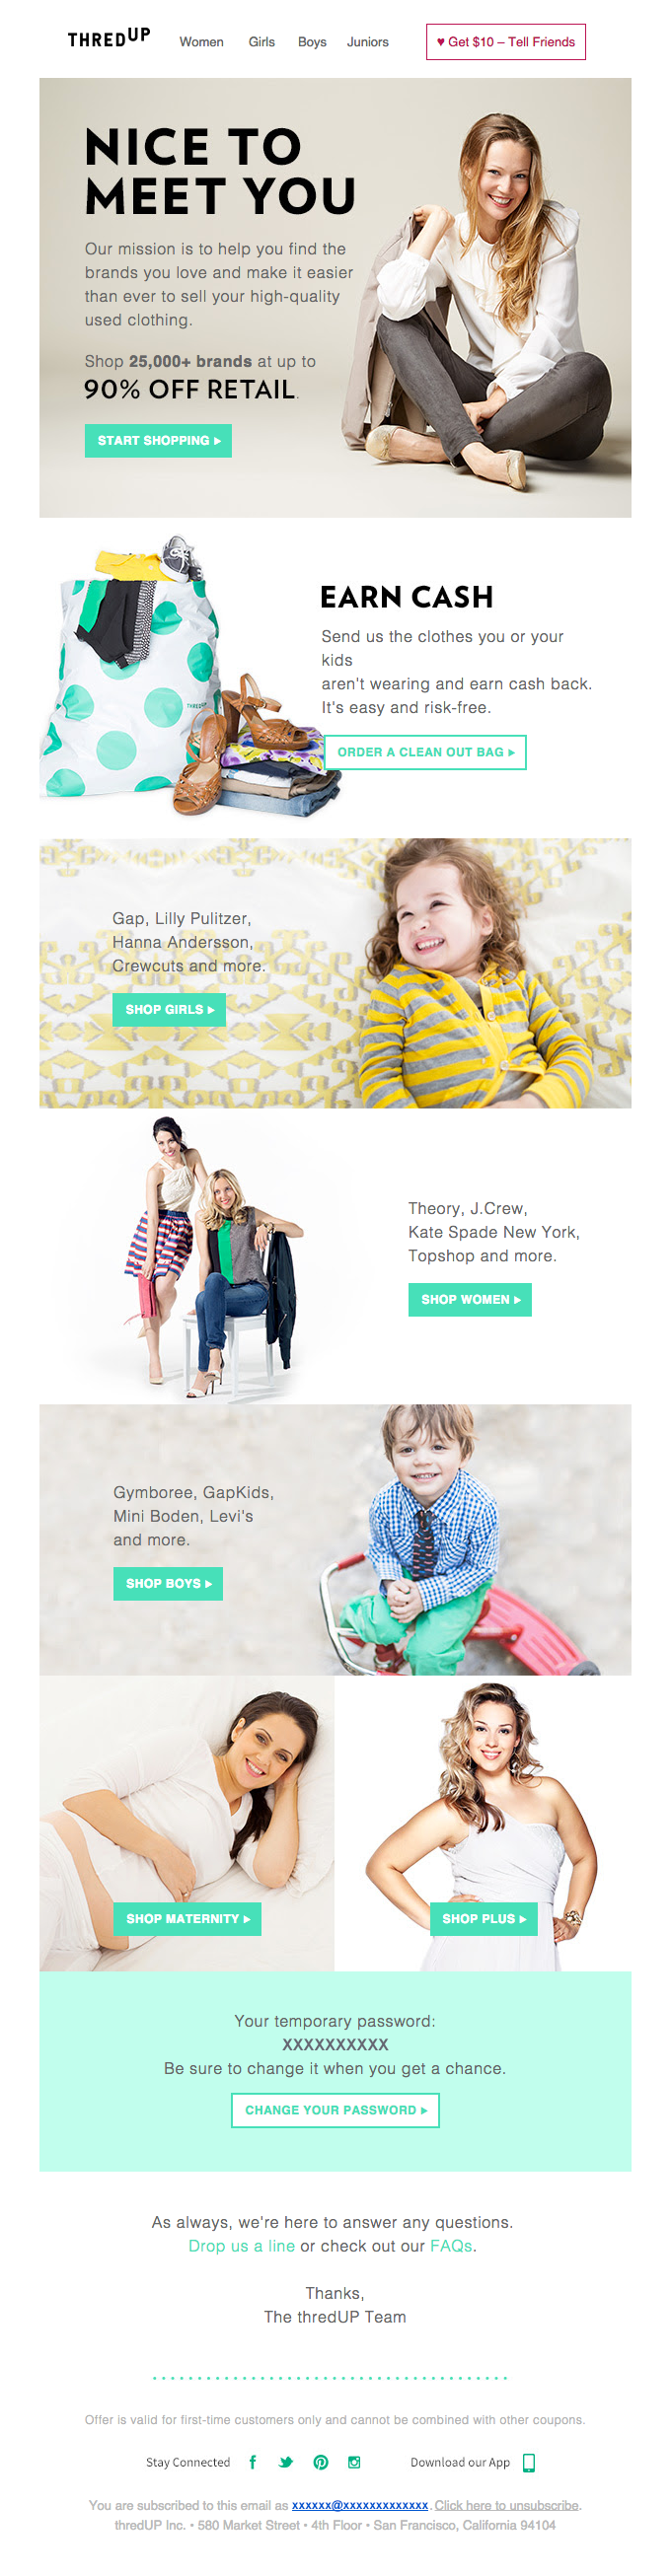 new-signup-onboarding-ecommerce-email-with-discount-from-thredup